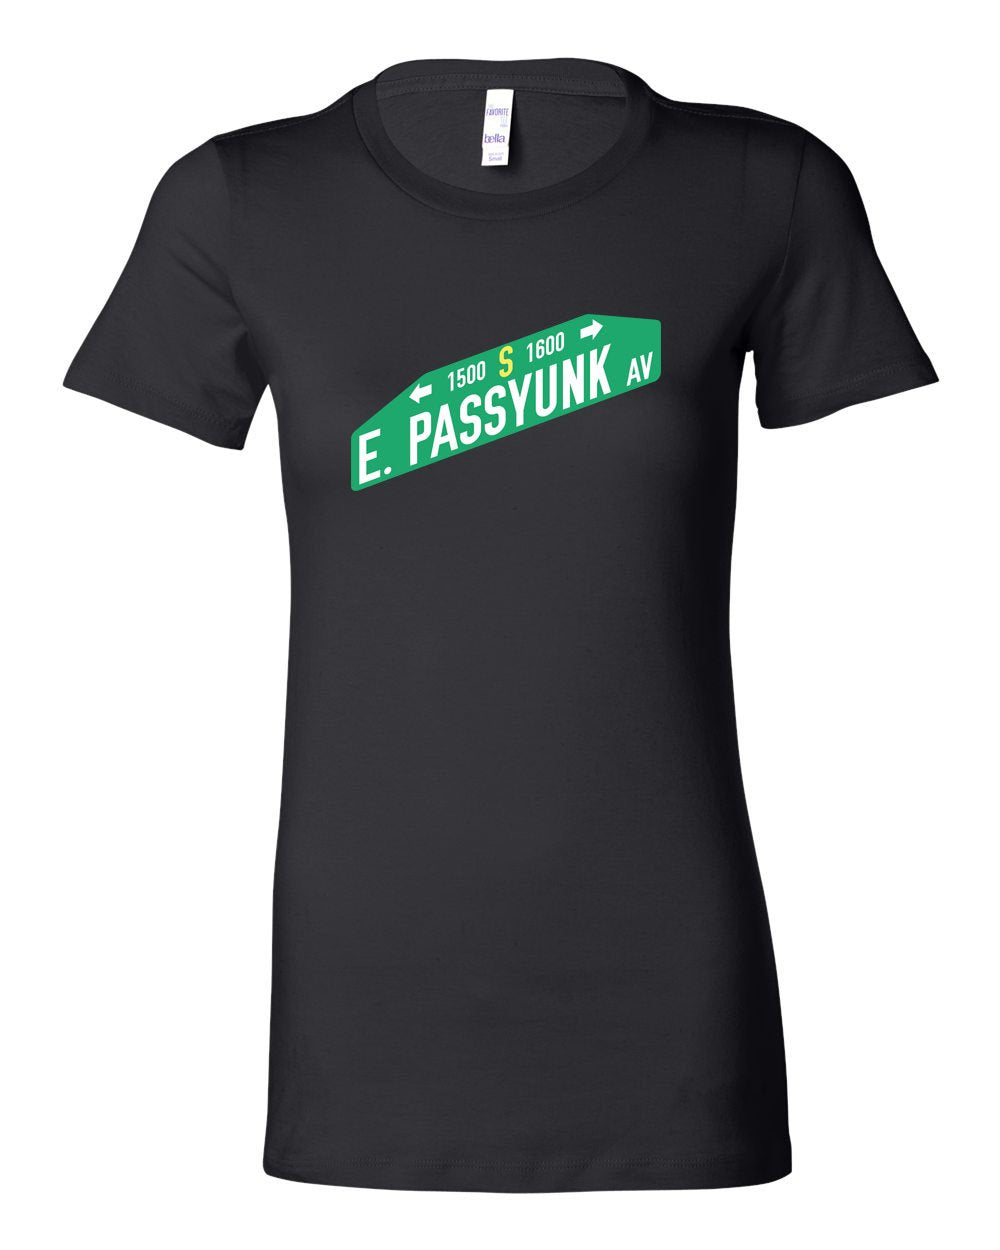 East Passyunk LADIES Junior-Fit T-Shirt